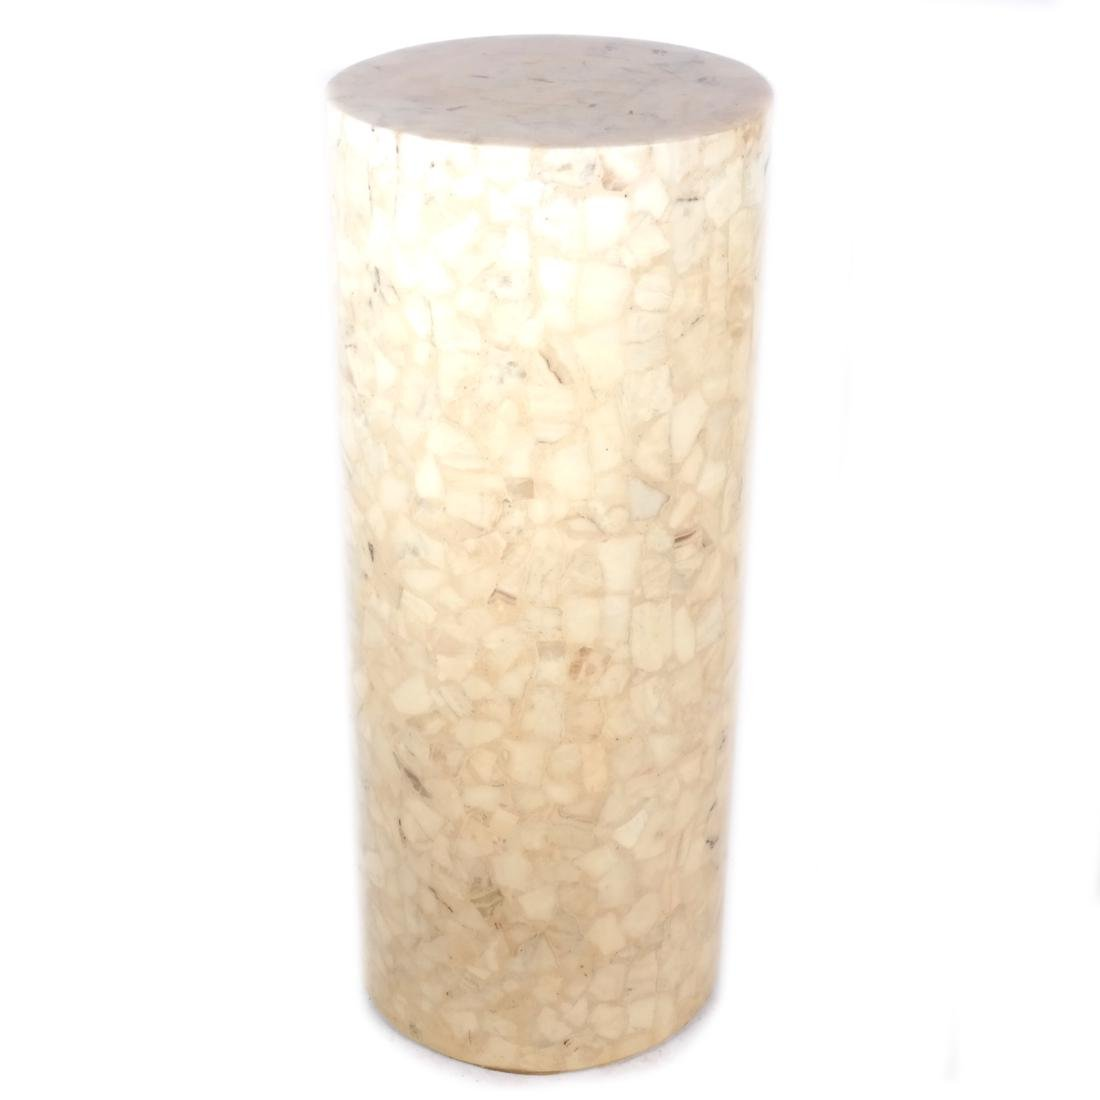 Tessellated-Style Column-Form Pedestal